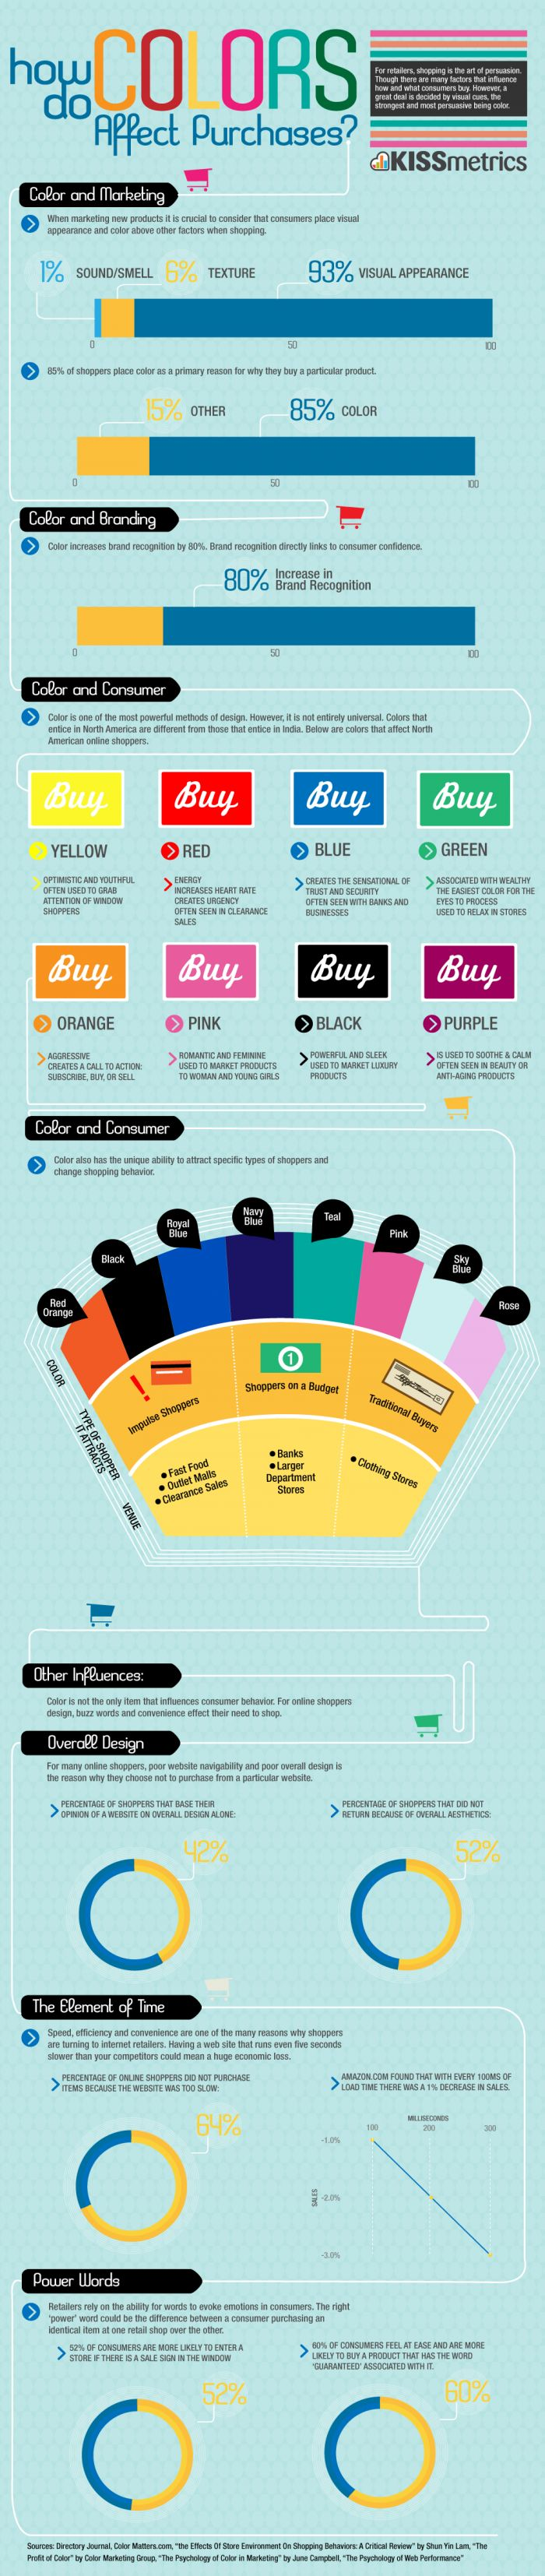 kissmetrics-color-purchases